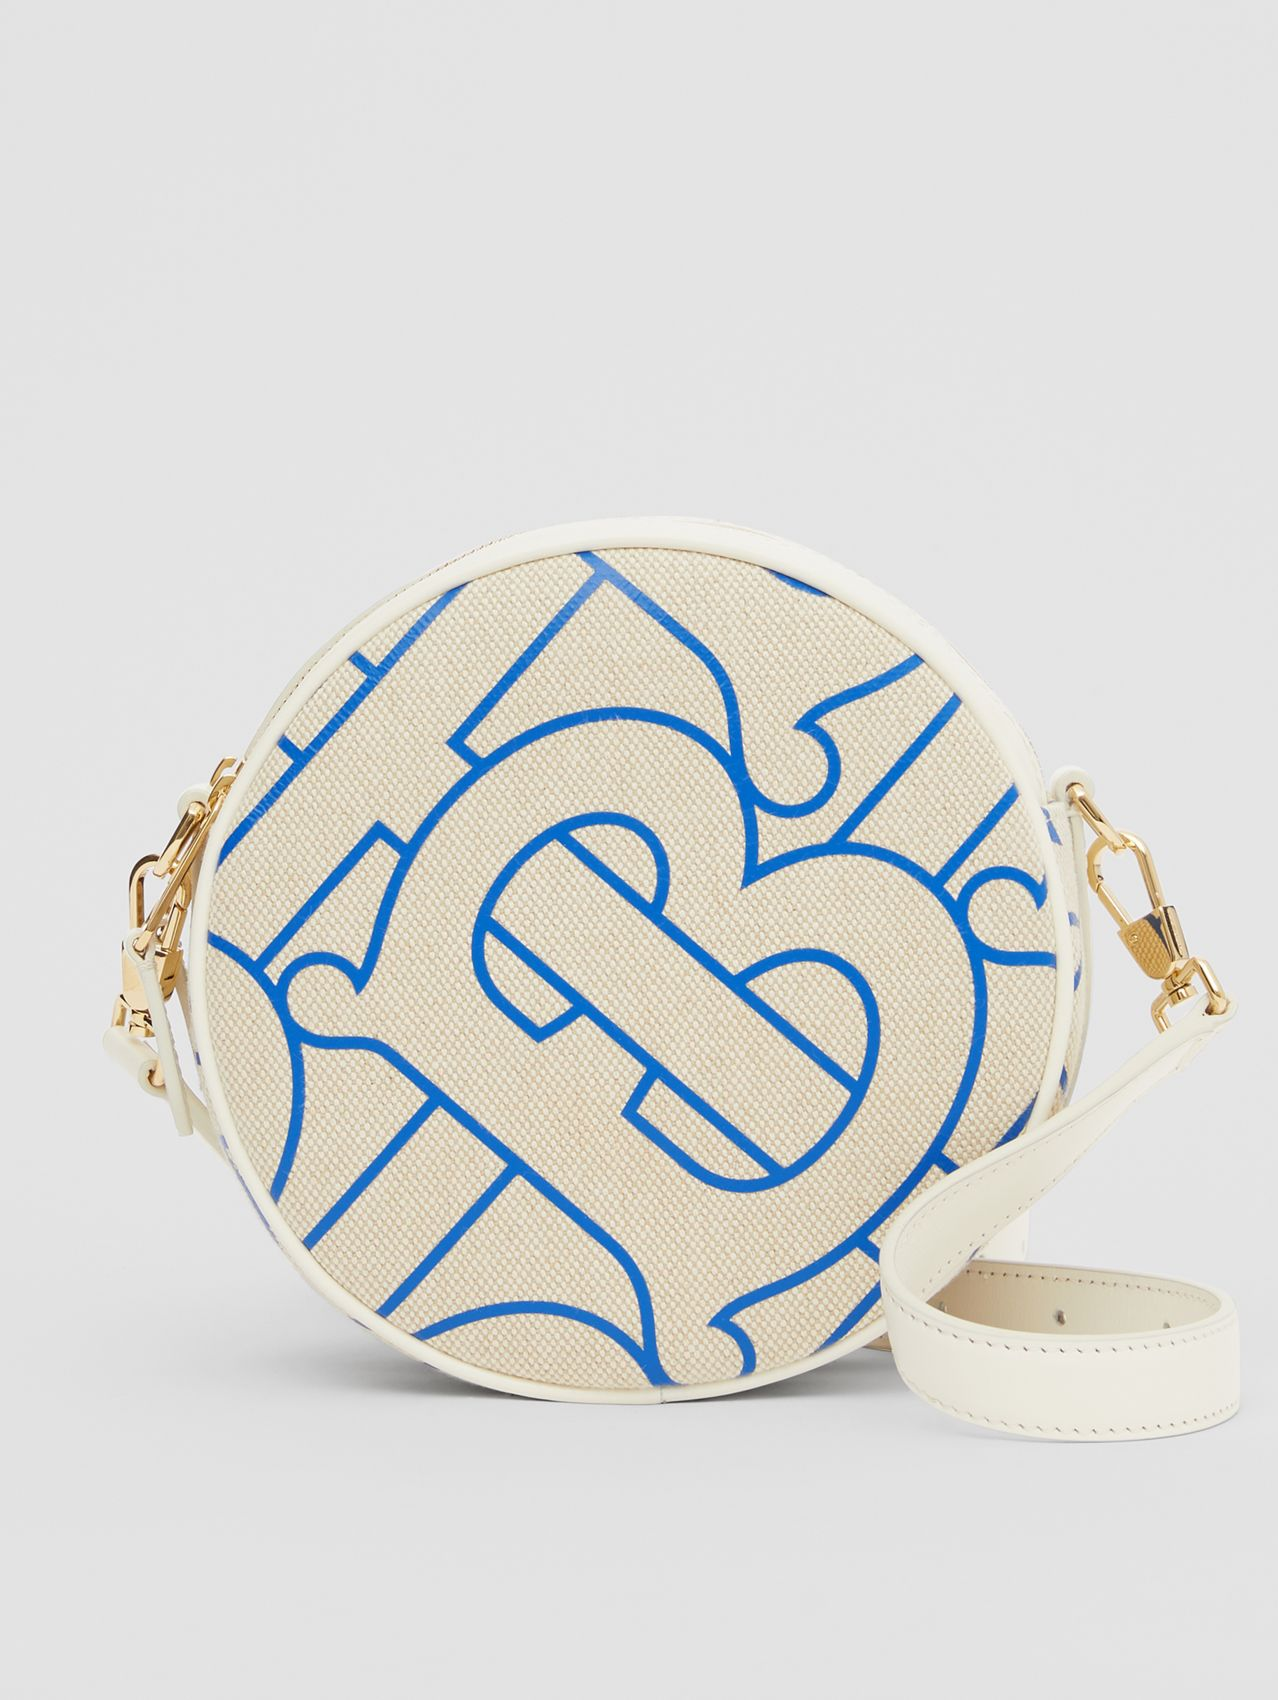 Monogram Motif Canvas and Leather Louise Bag in Natural/blue